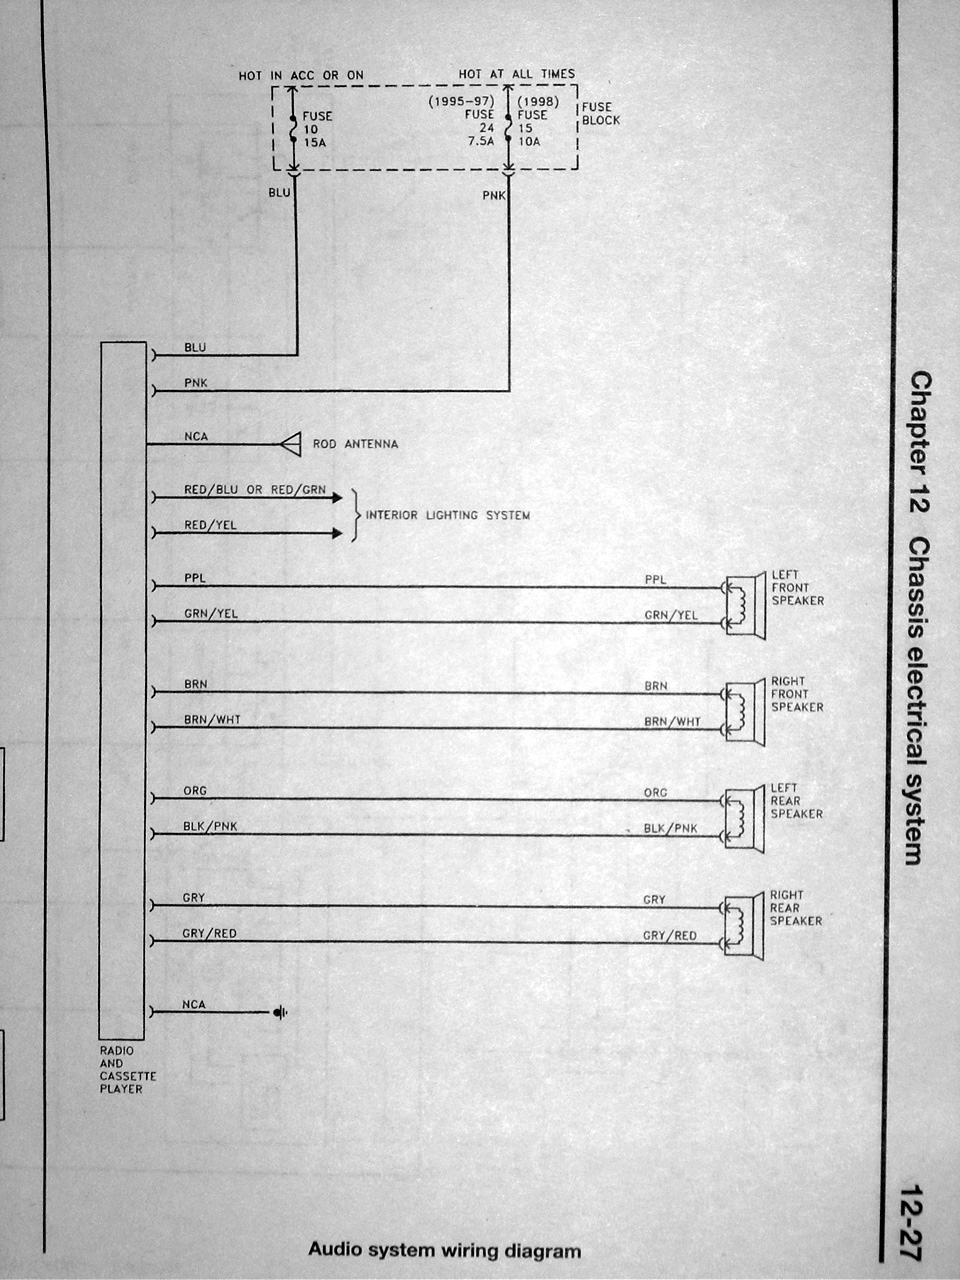 DSC01849 wiring diagram thread *useful info* nissan forum Nissan Wiring Harness Diagram at soozxer.org